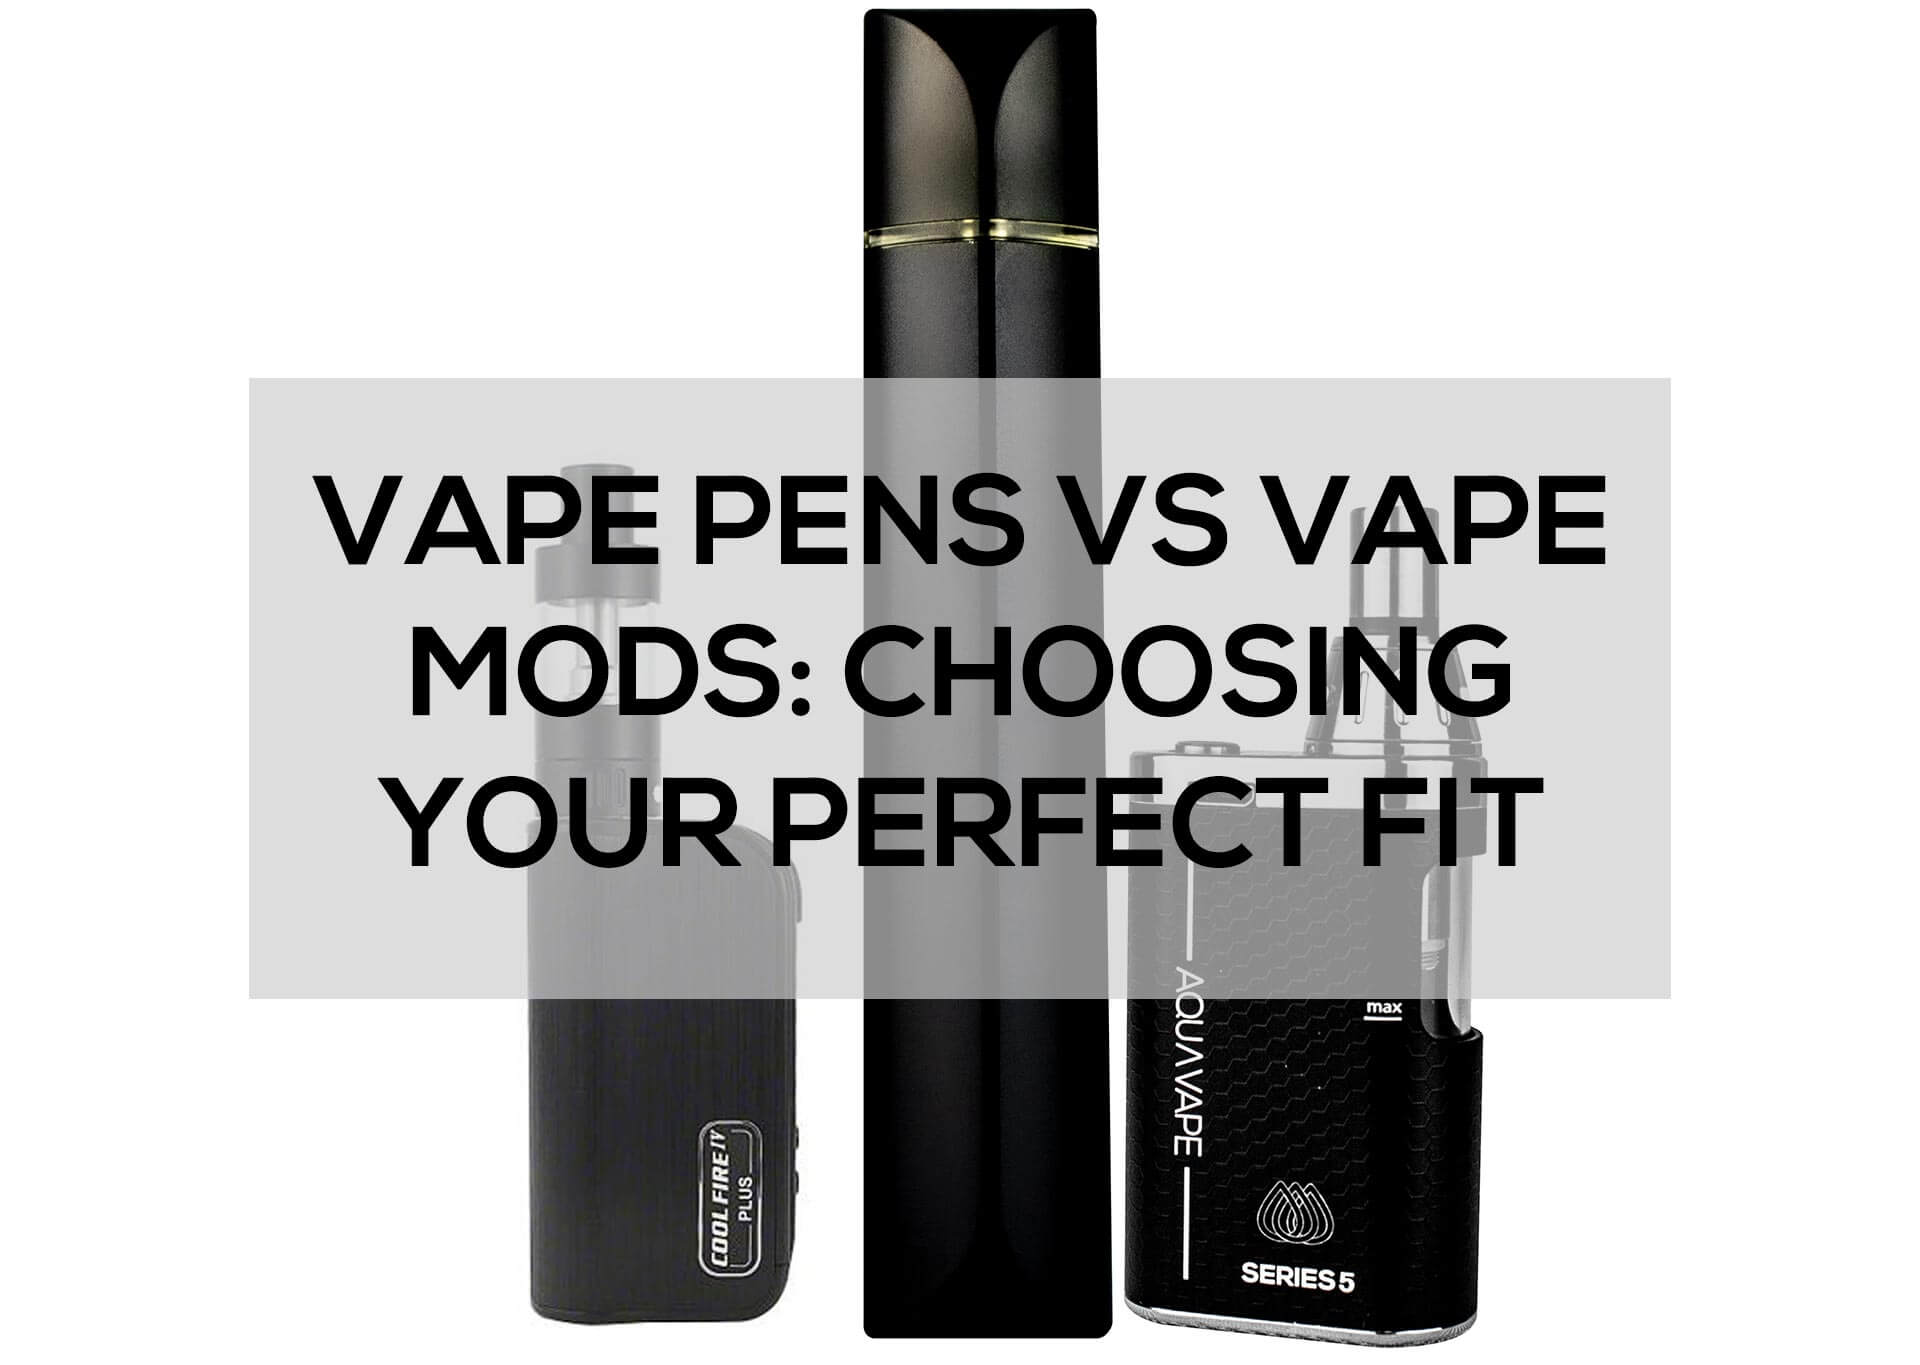 Vape-Pens-vs-Vape-Mods--Choosing-your-Perfect-Fit